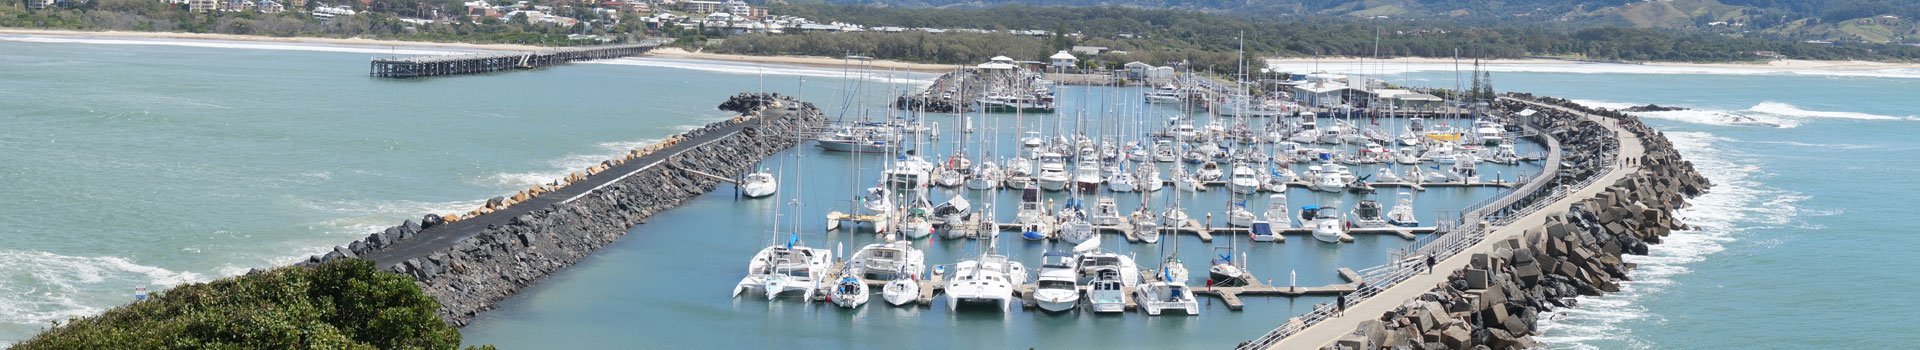 coffs harbour international marina banner